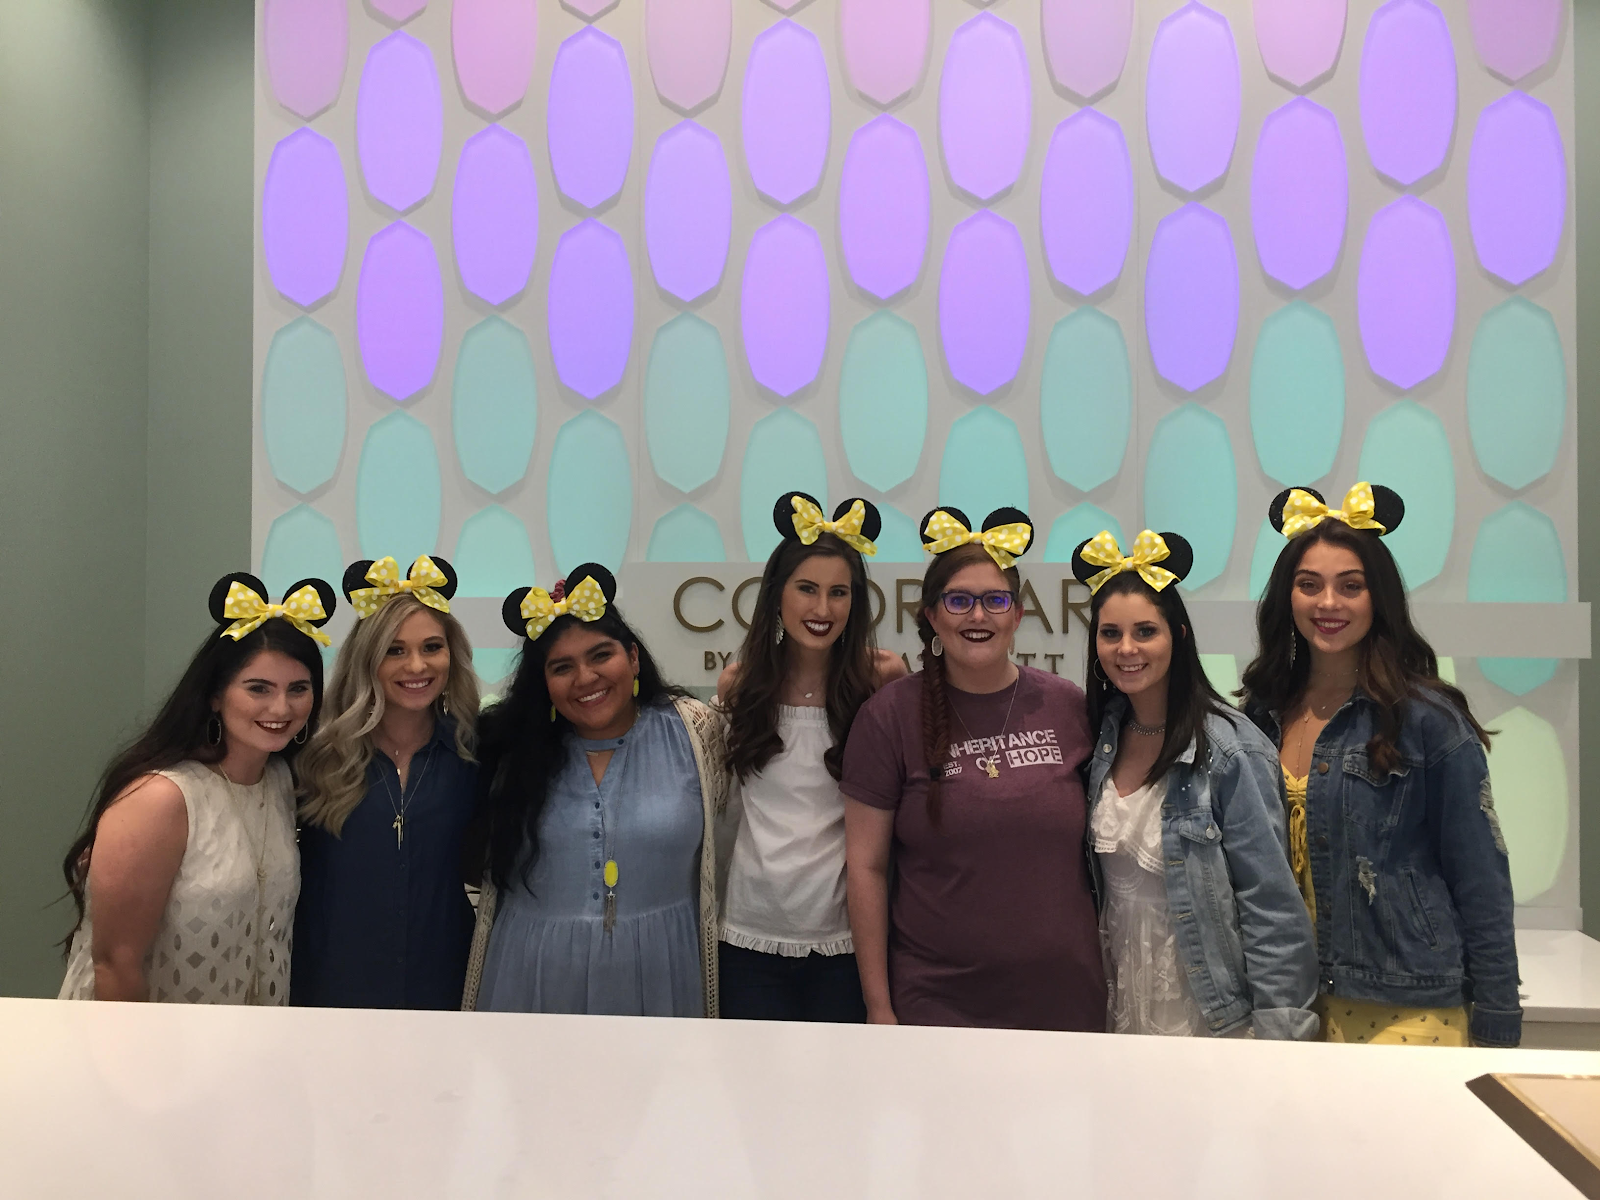 Faces of Holley Day: Kendra Scott connection inspires service to Inheritance of Hope families